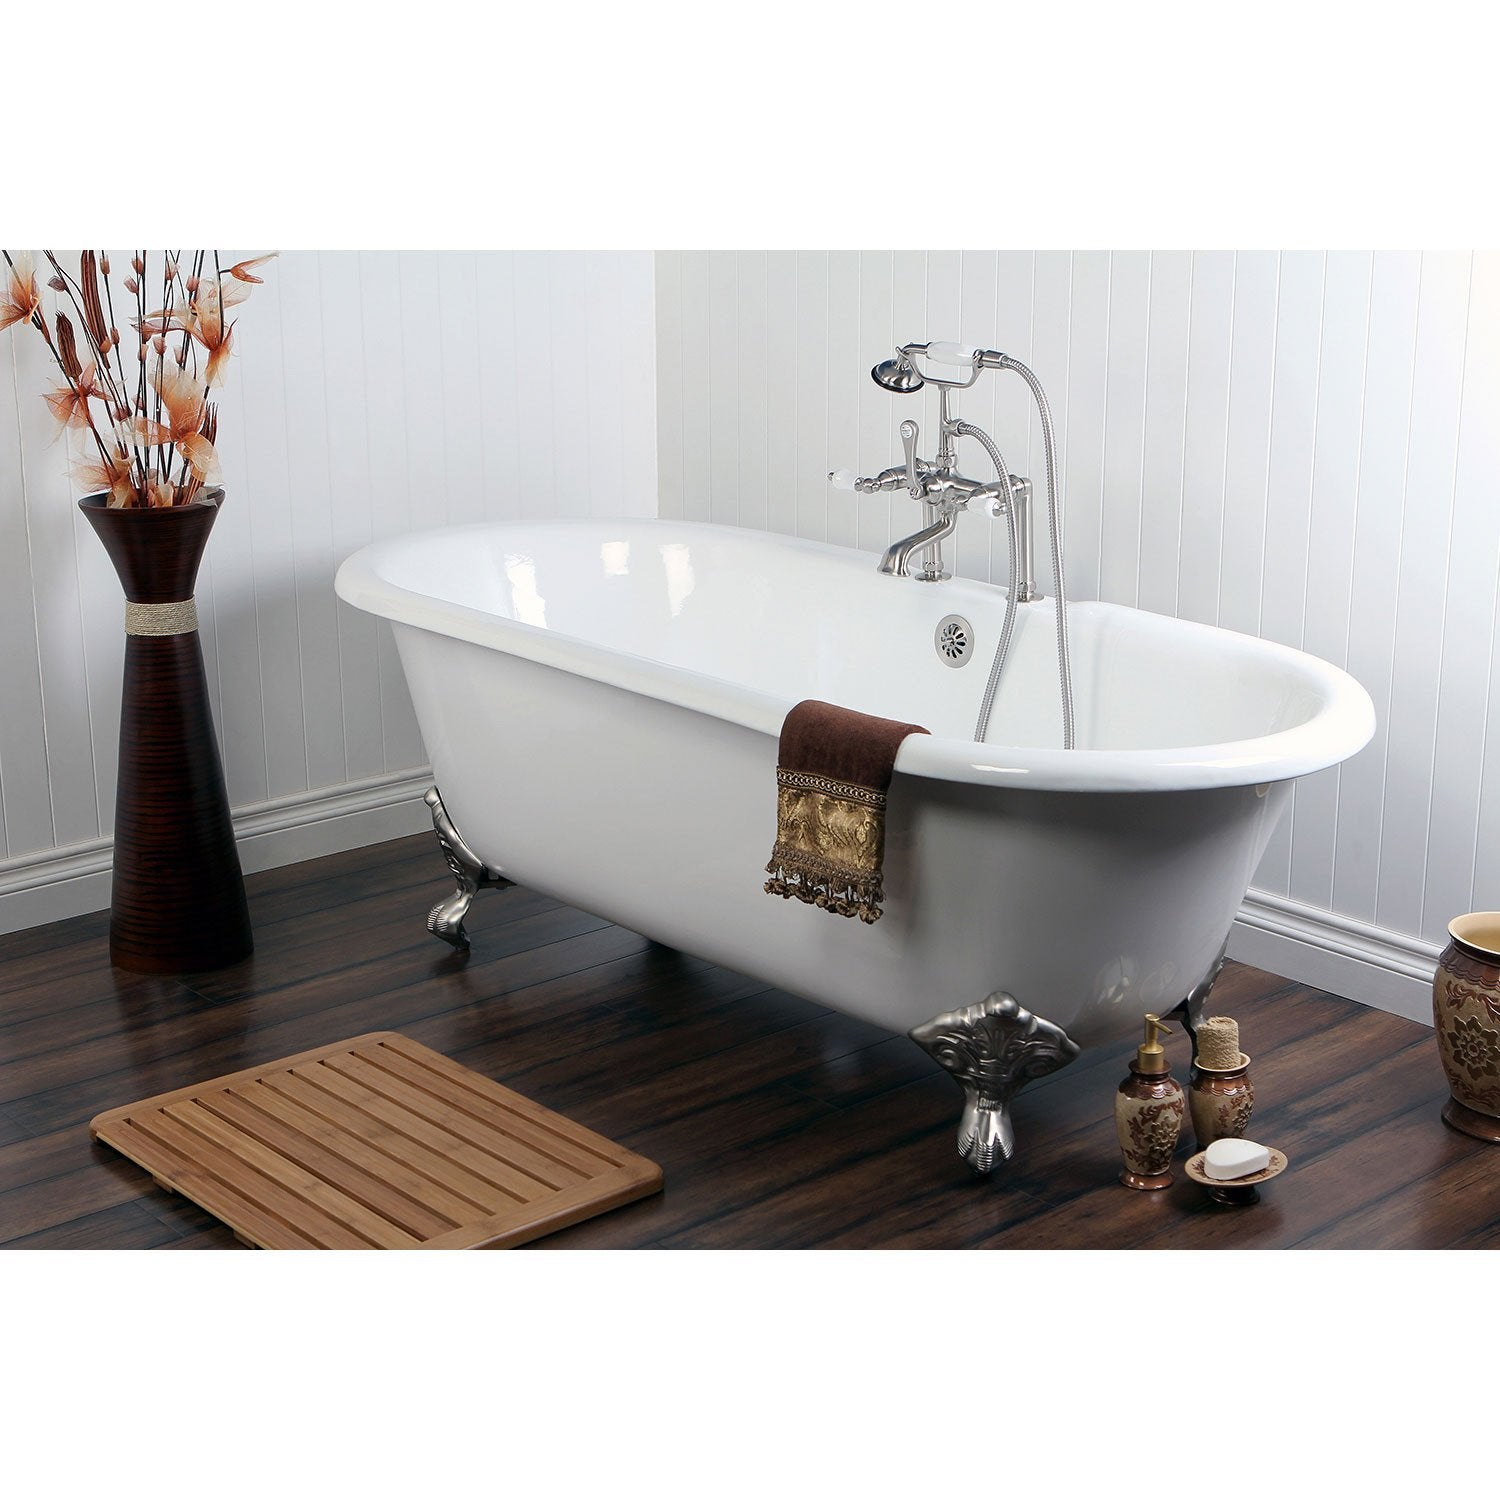 66 Cast Iron Claw Foot Tub W Satin Nickel Tub Faucet Hardware